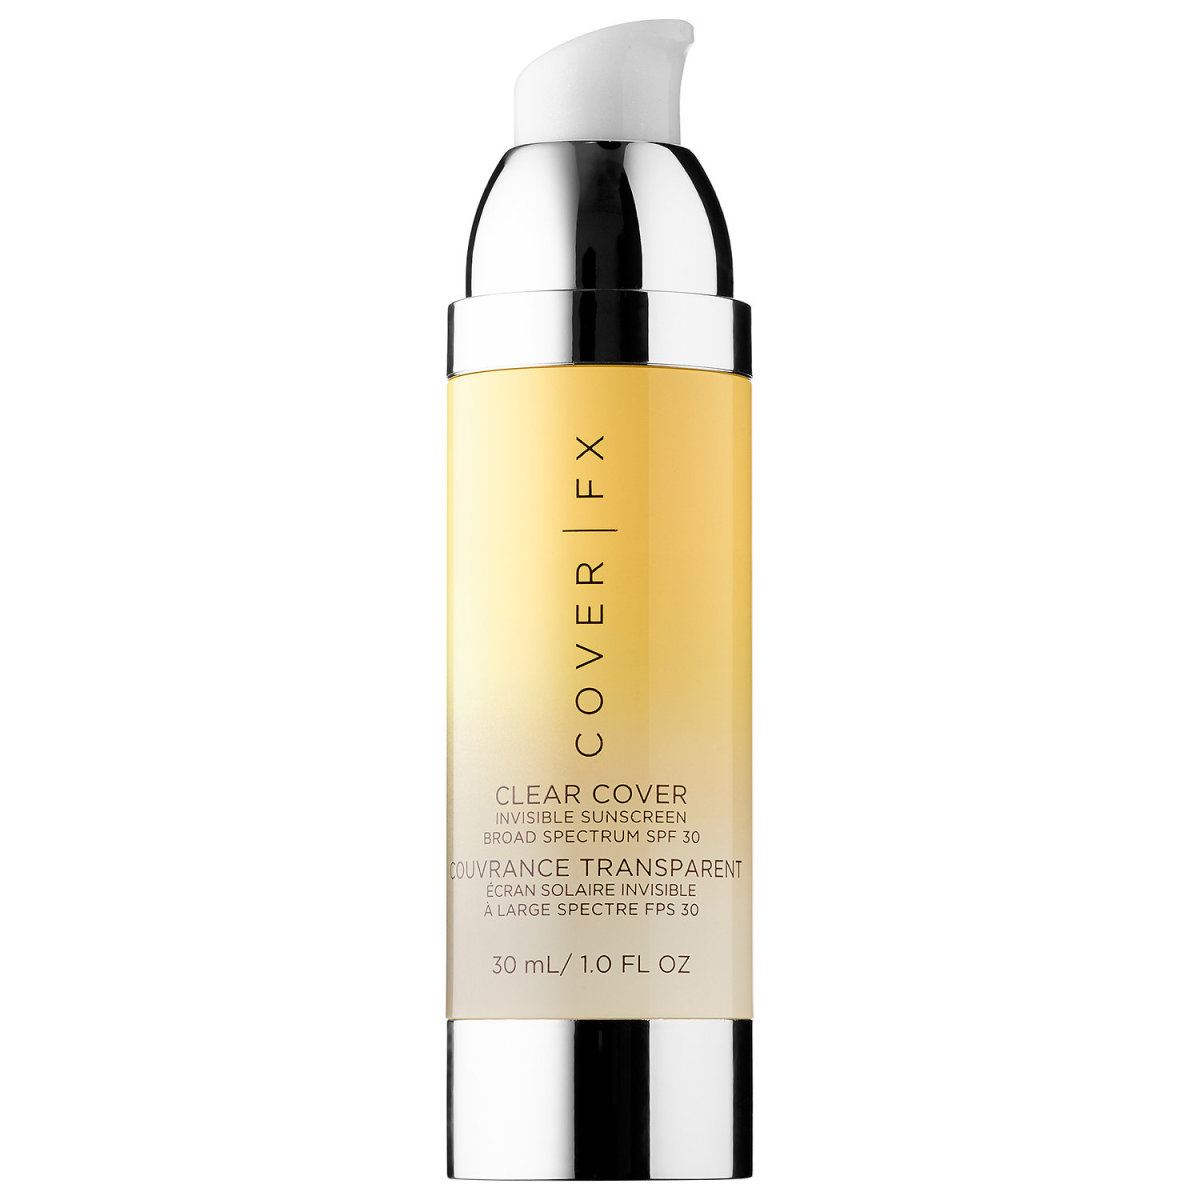 Cover FX Clear Cover Invisible Sunscreen Broad Spectrum SPF 30, $45, available at Sephora.com. Photo: Sephora